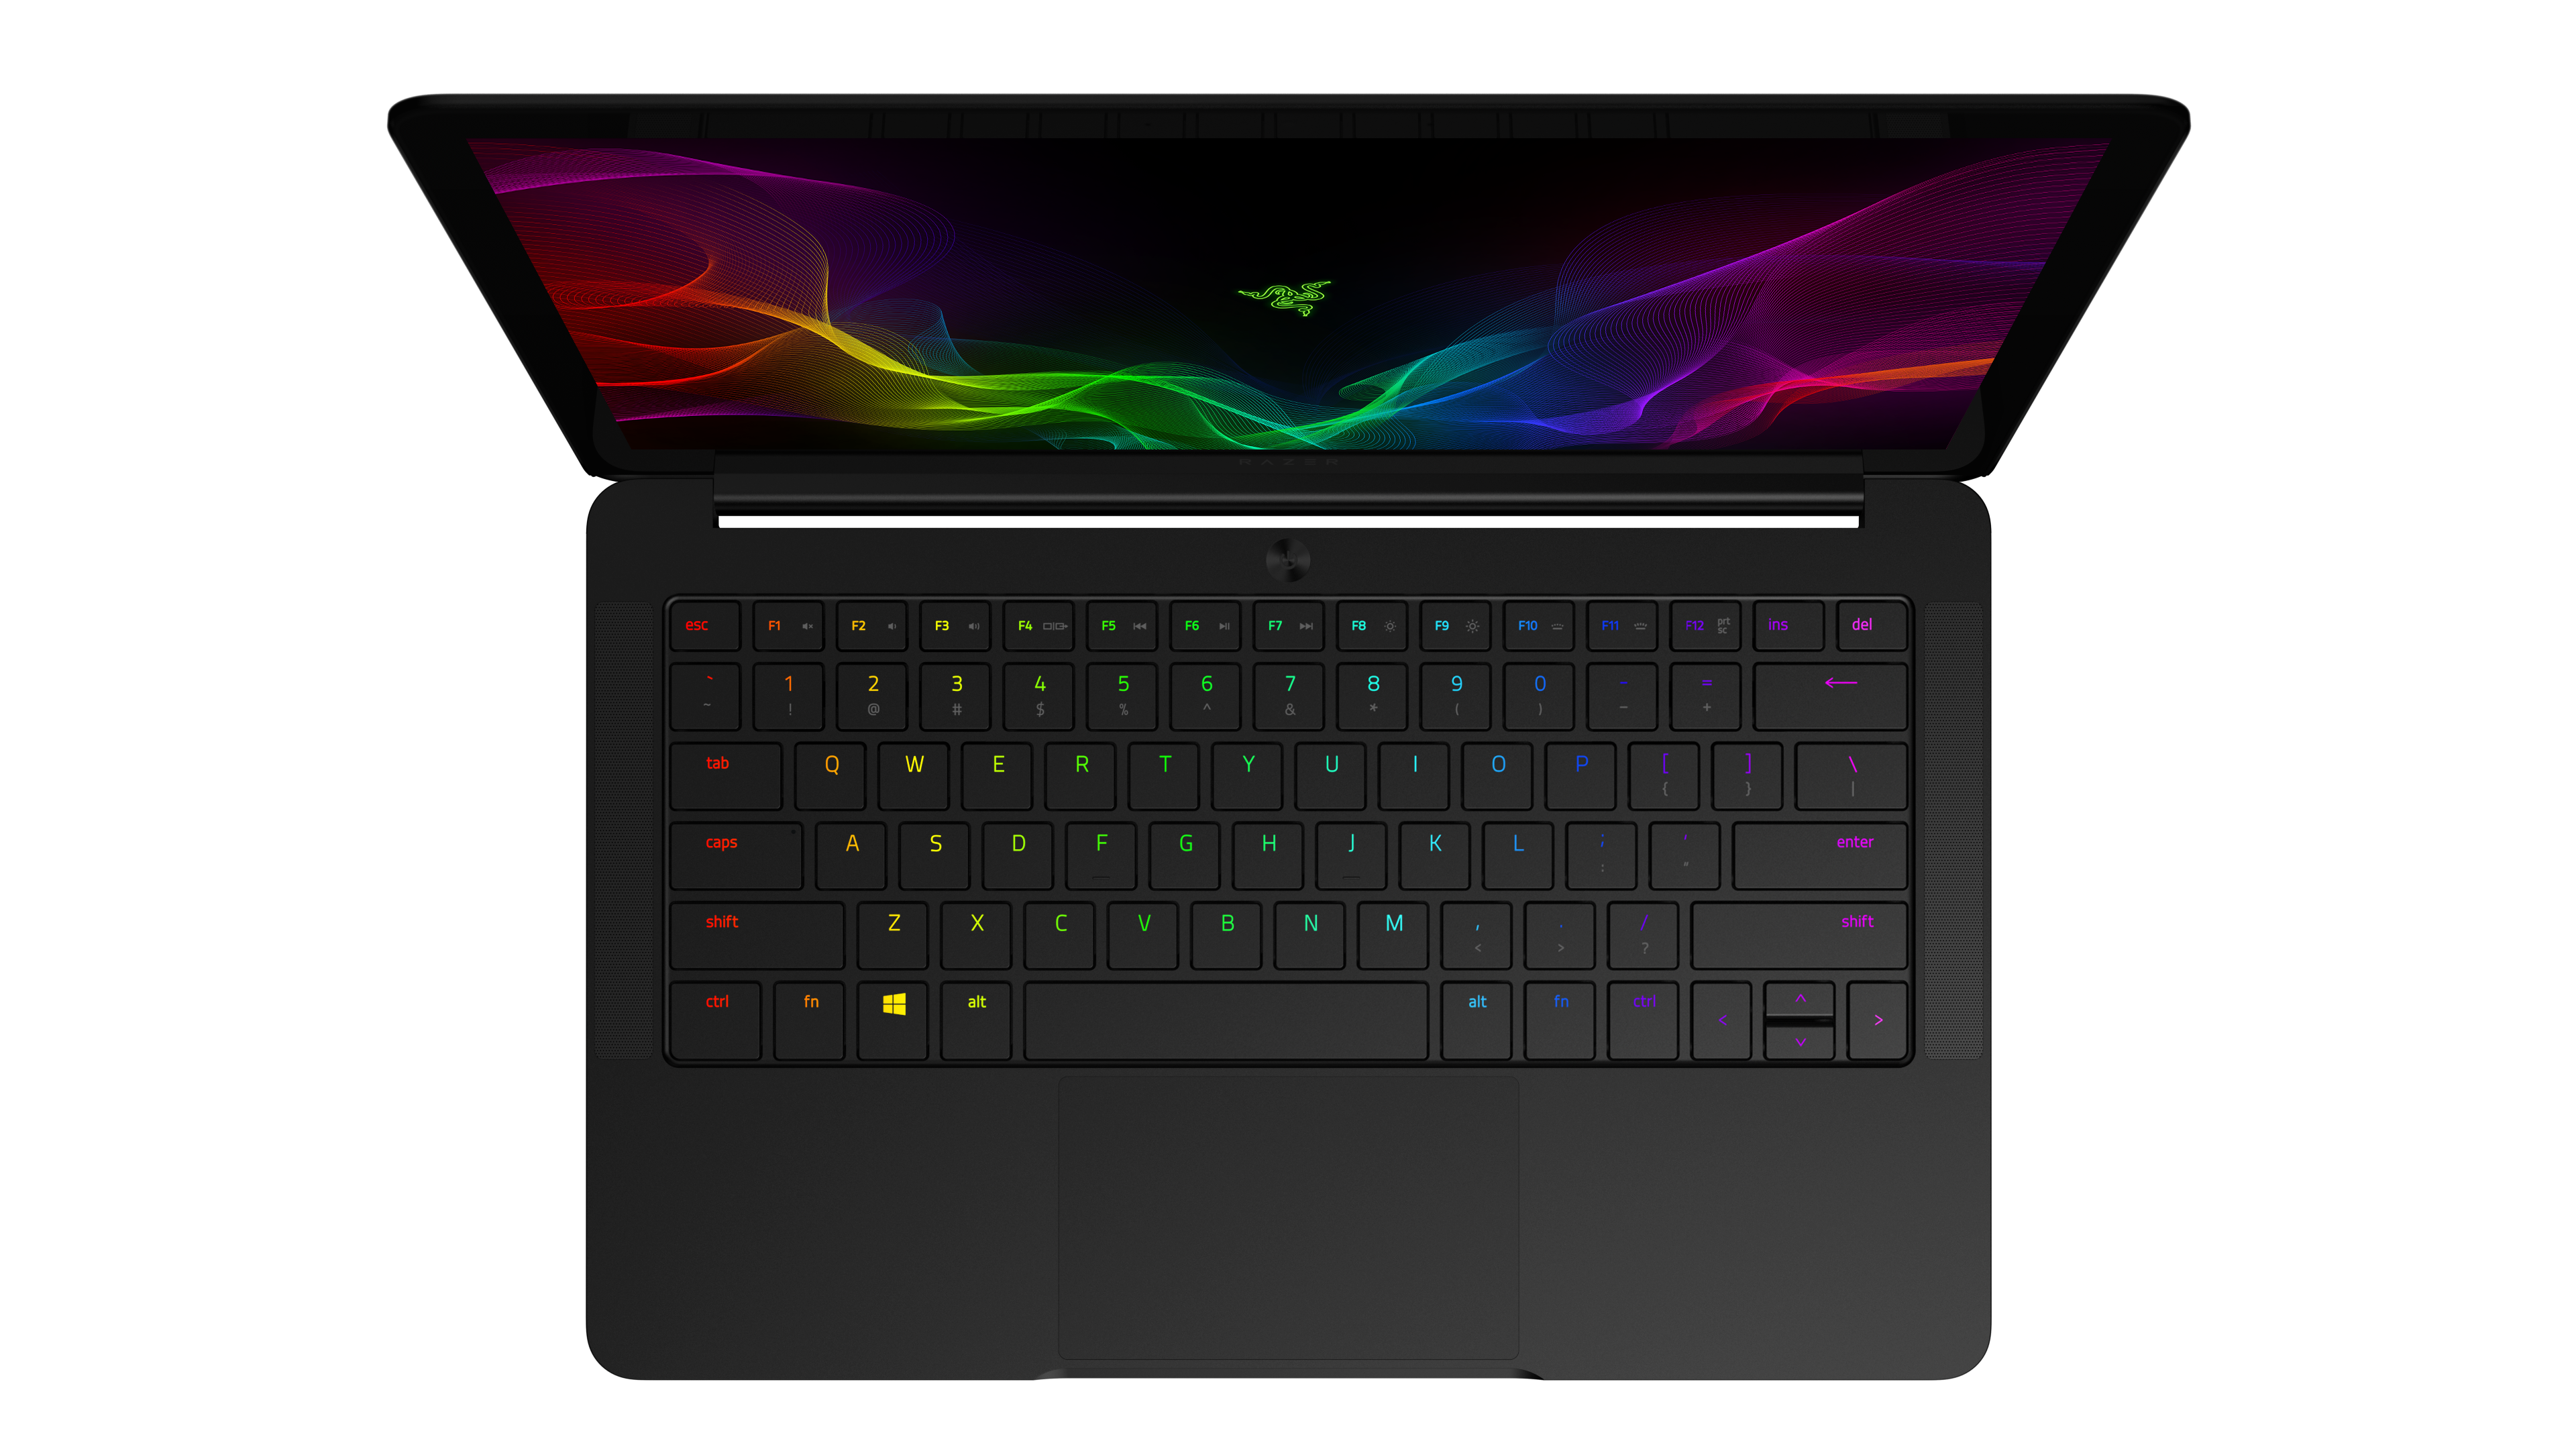 Razer Launches Quad-Core Blade Stealth Laptop